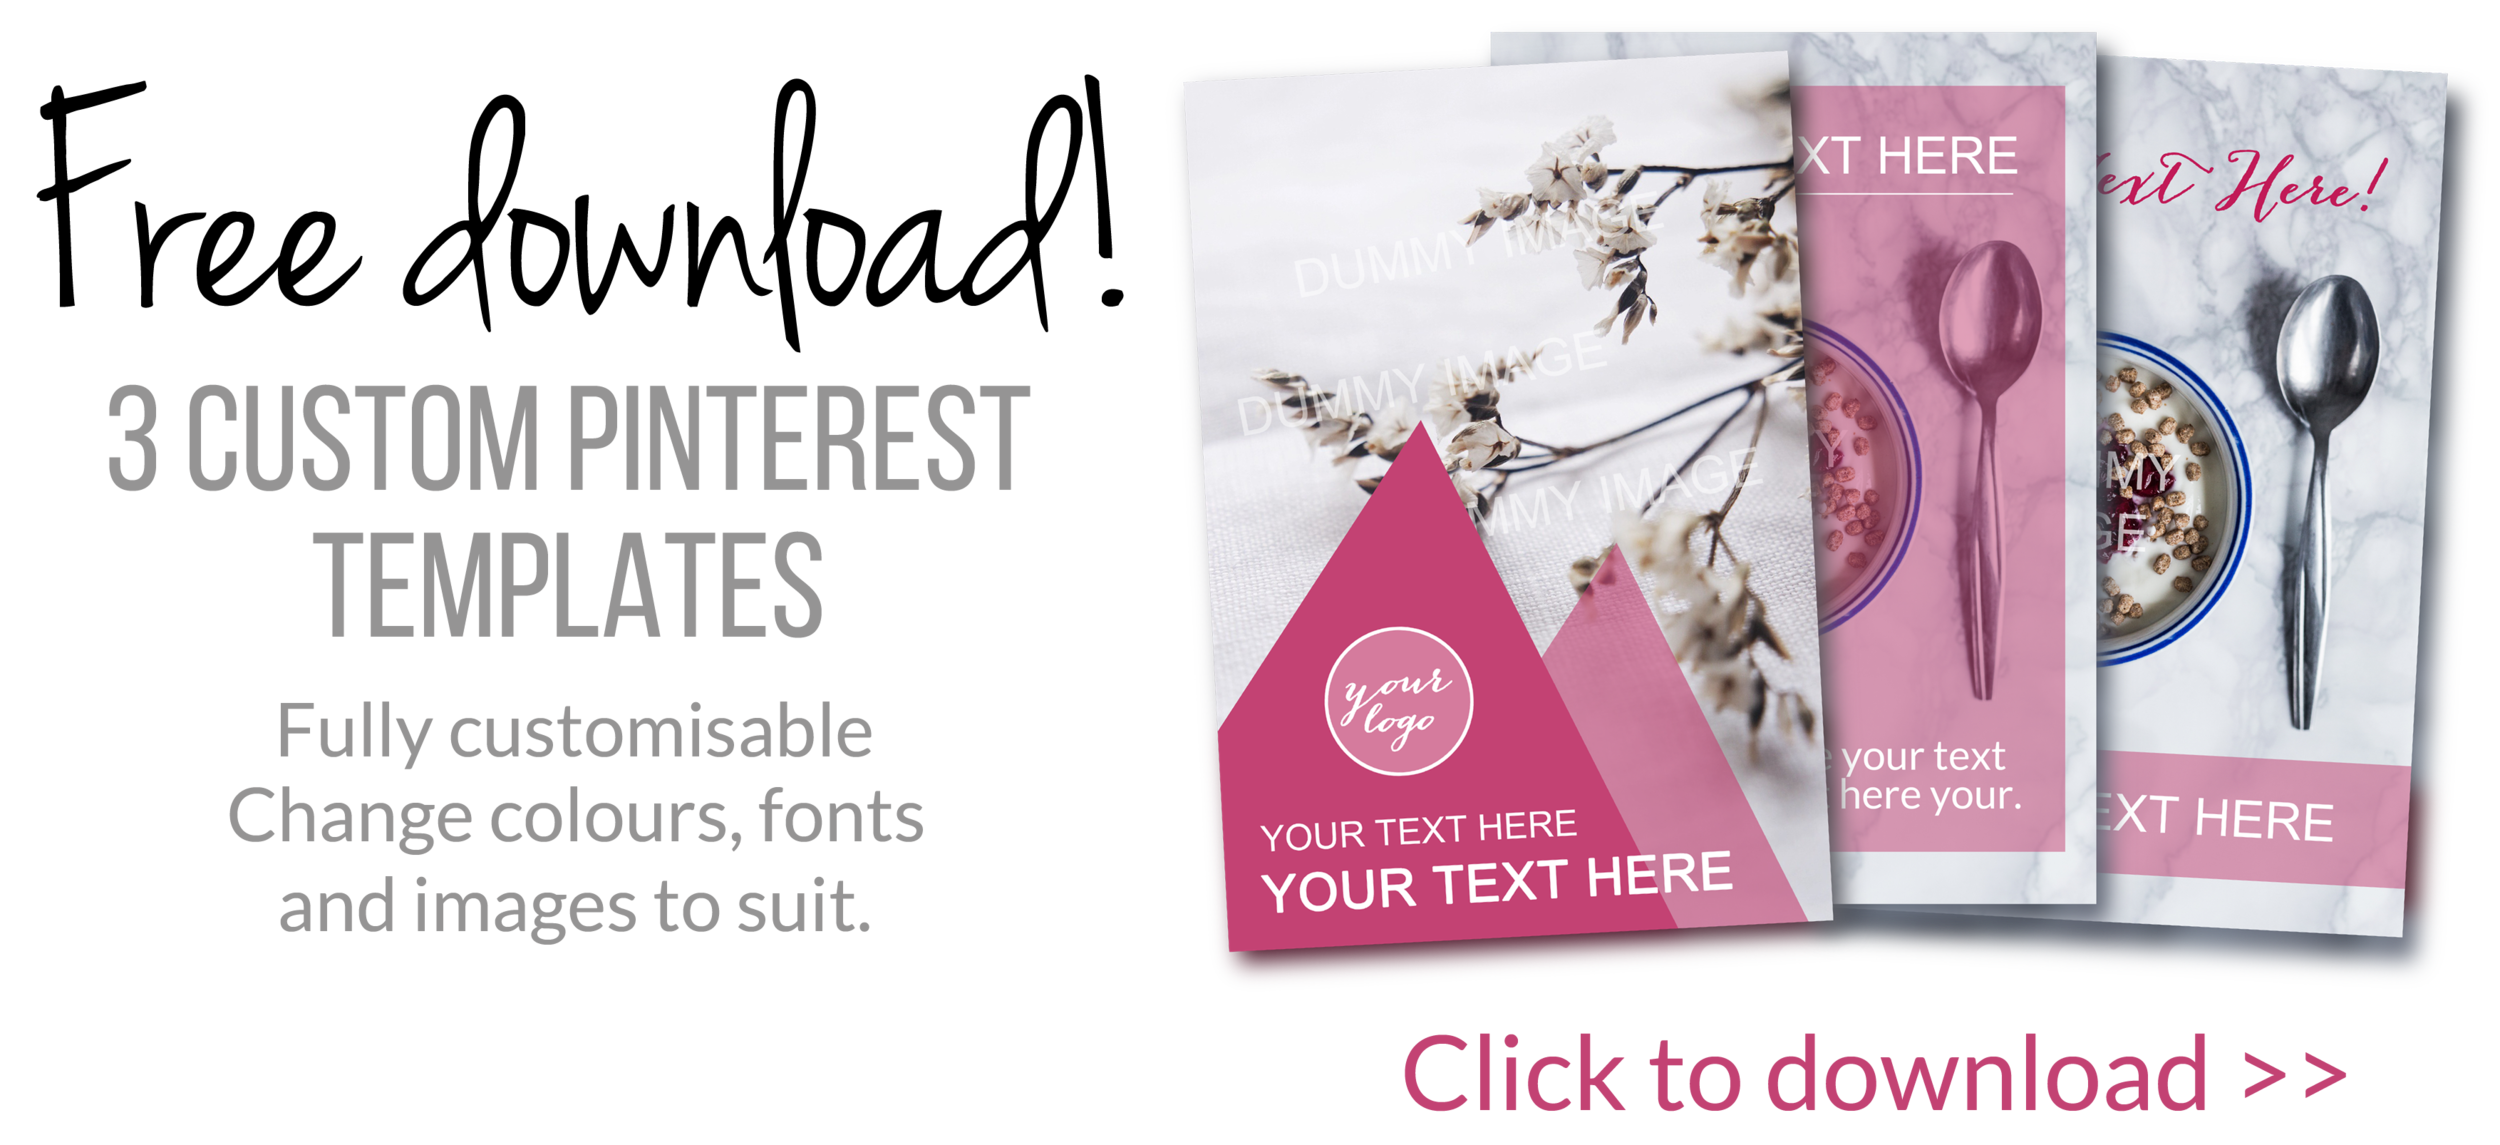 Why you absolutely need to be on pinterest + FREE download Custom Pinterest Templates!